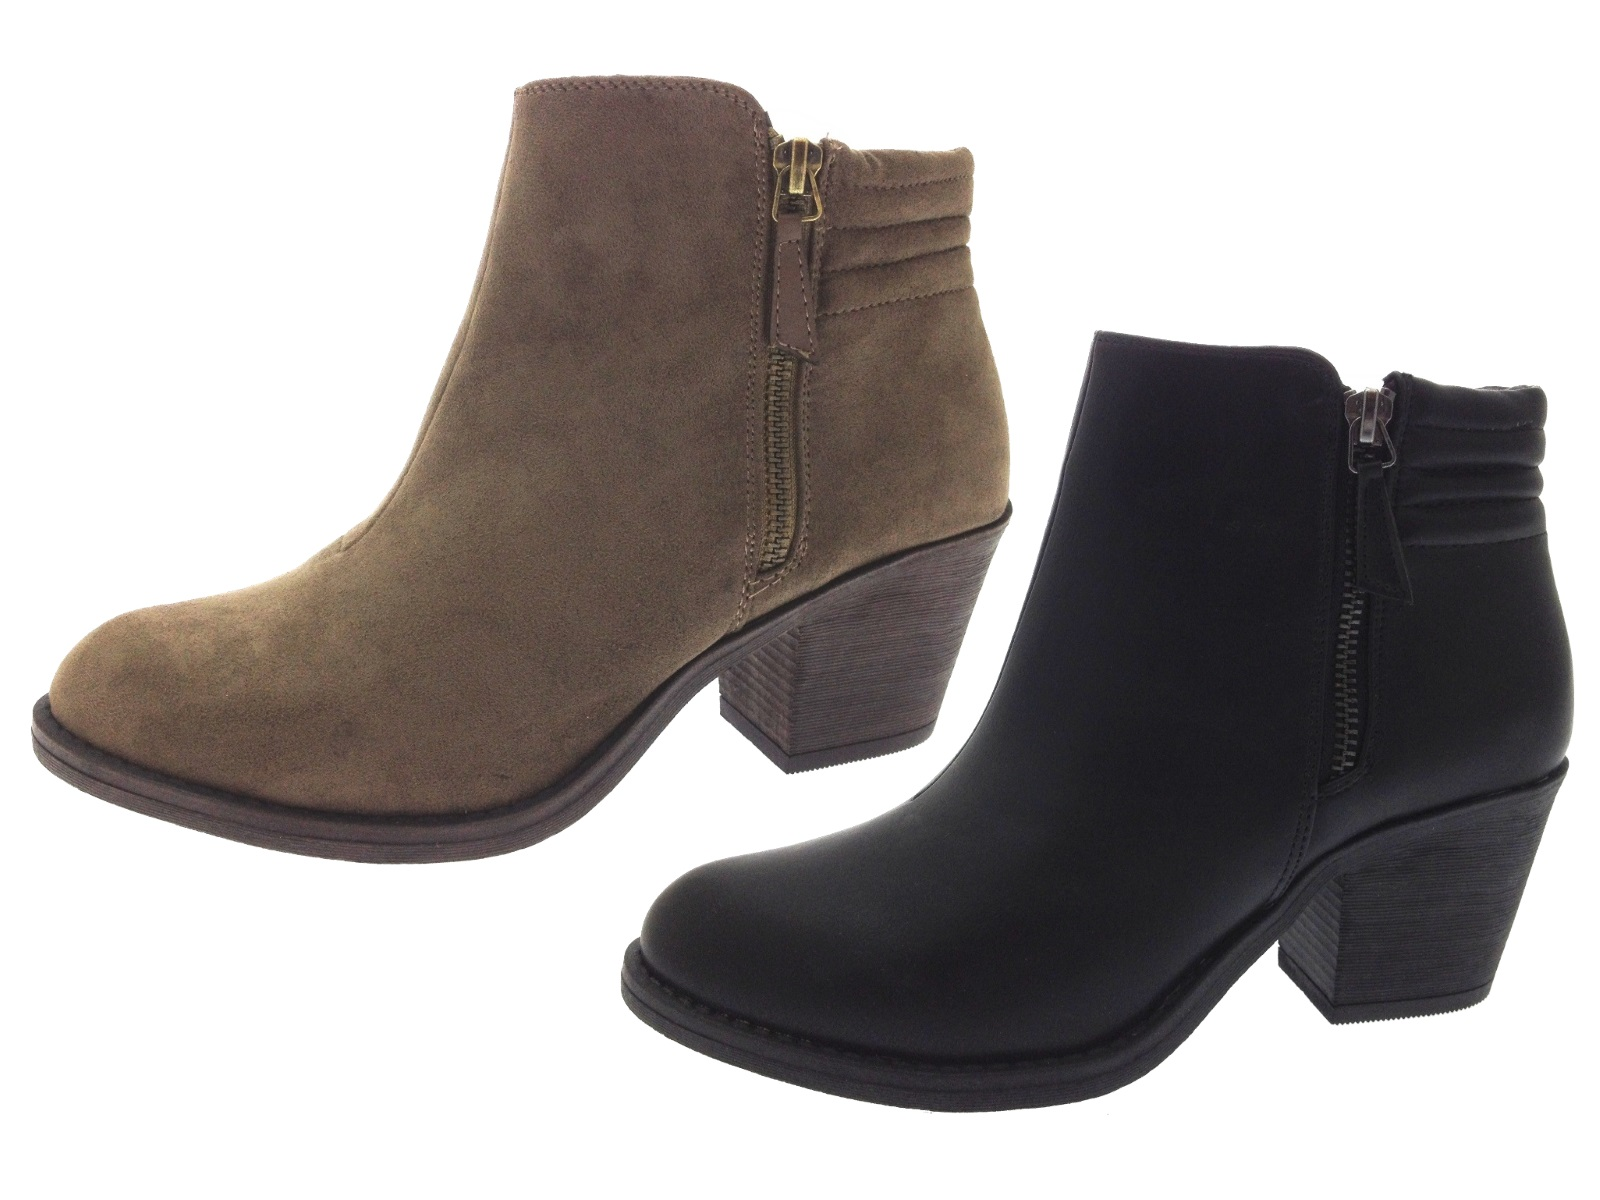 Shop for girls ankle boot online at Target. Free shipping on purchases over $35 and save 5% every day with your Target REDcard.